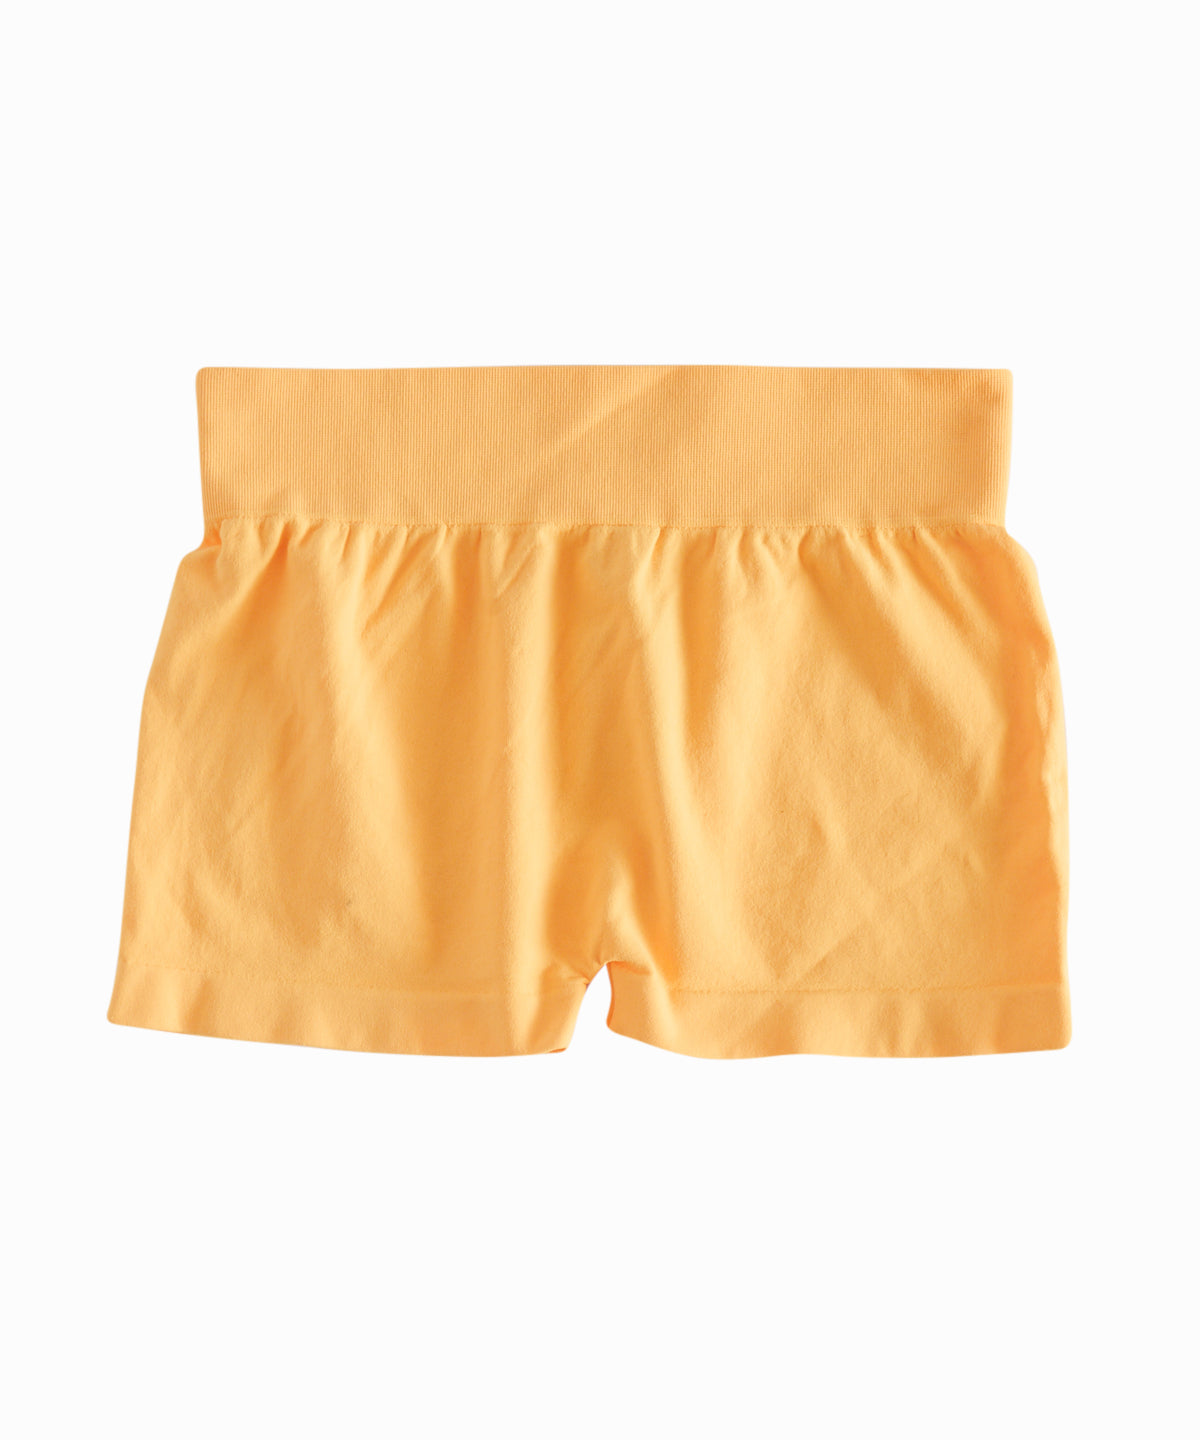 Orange Boy Shorts